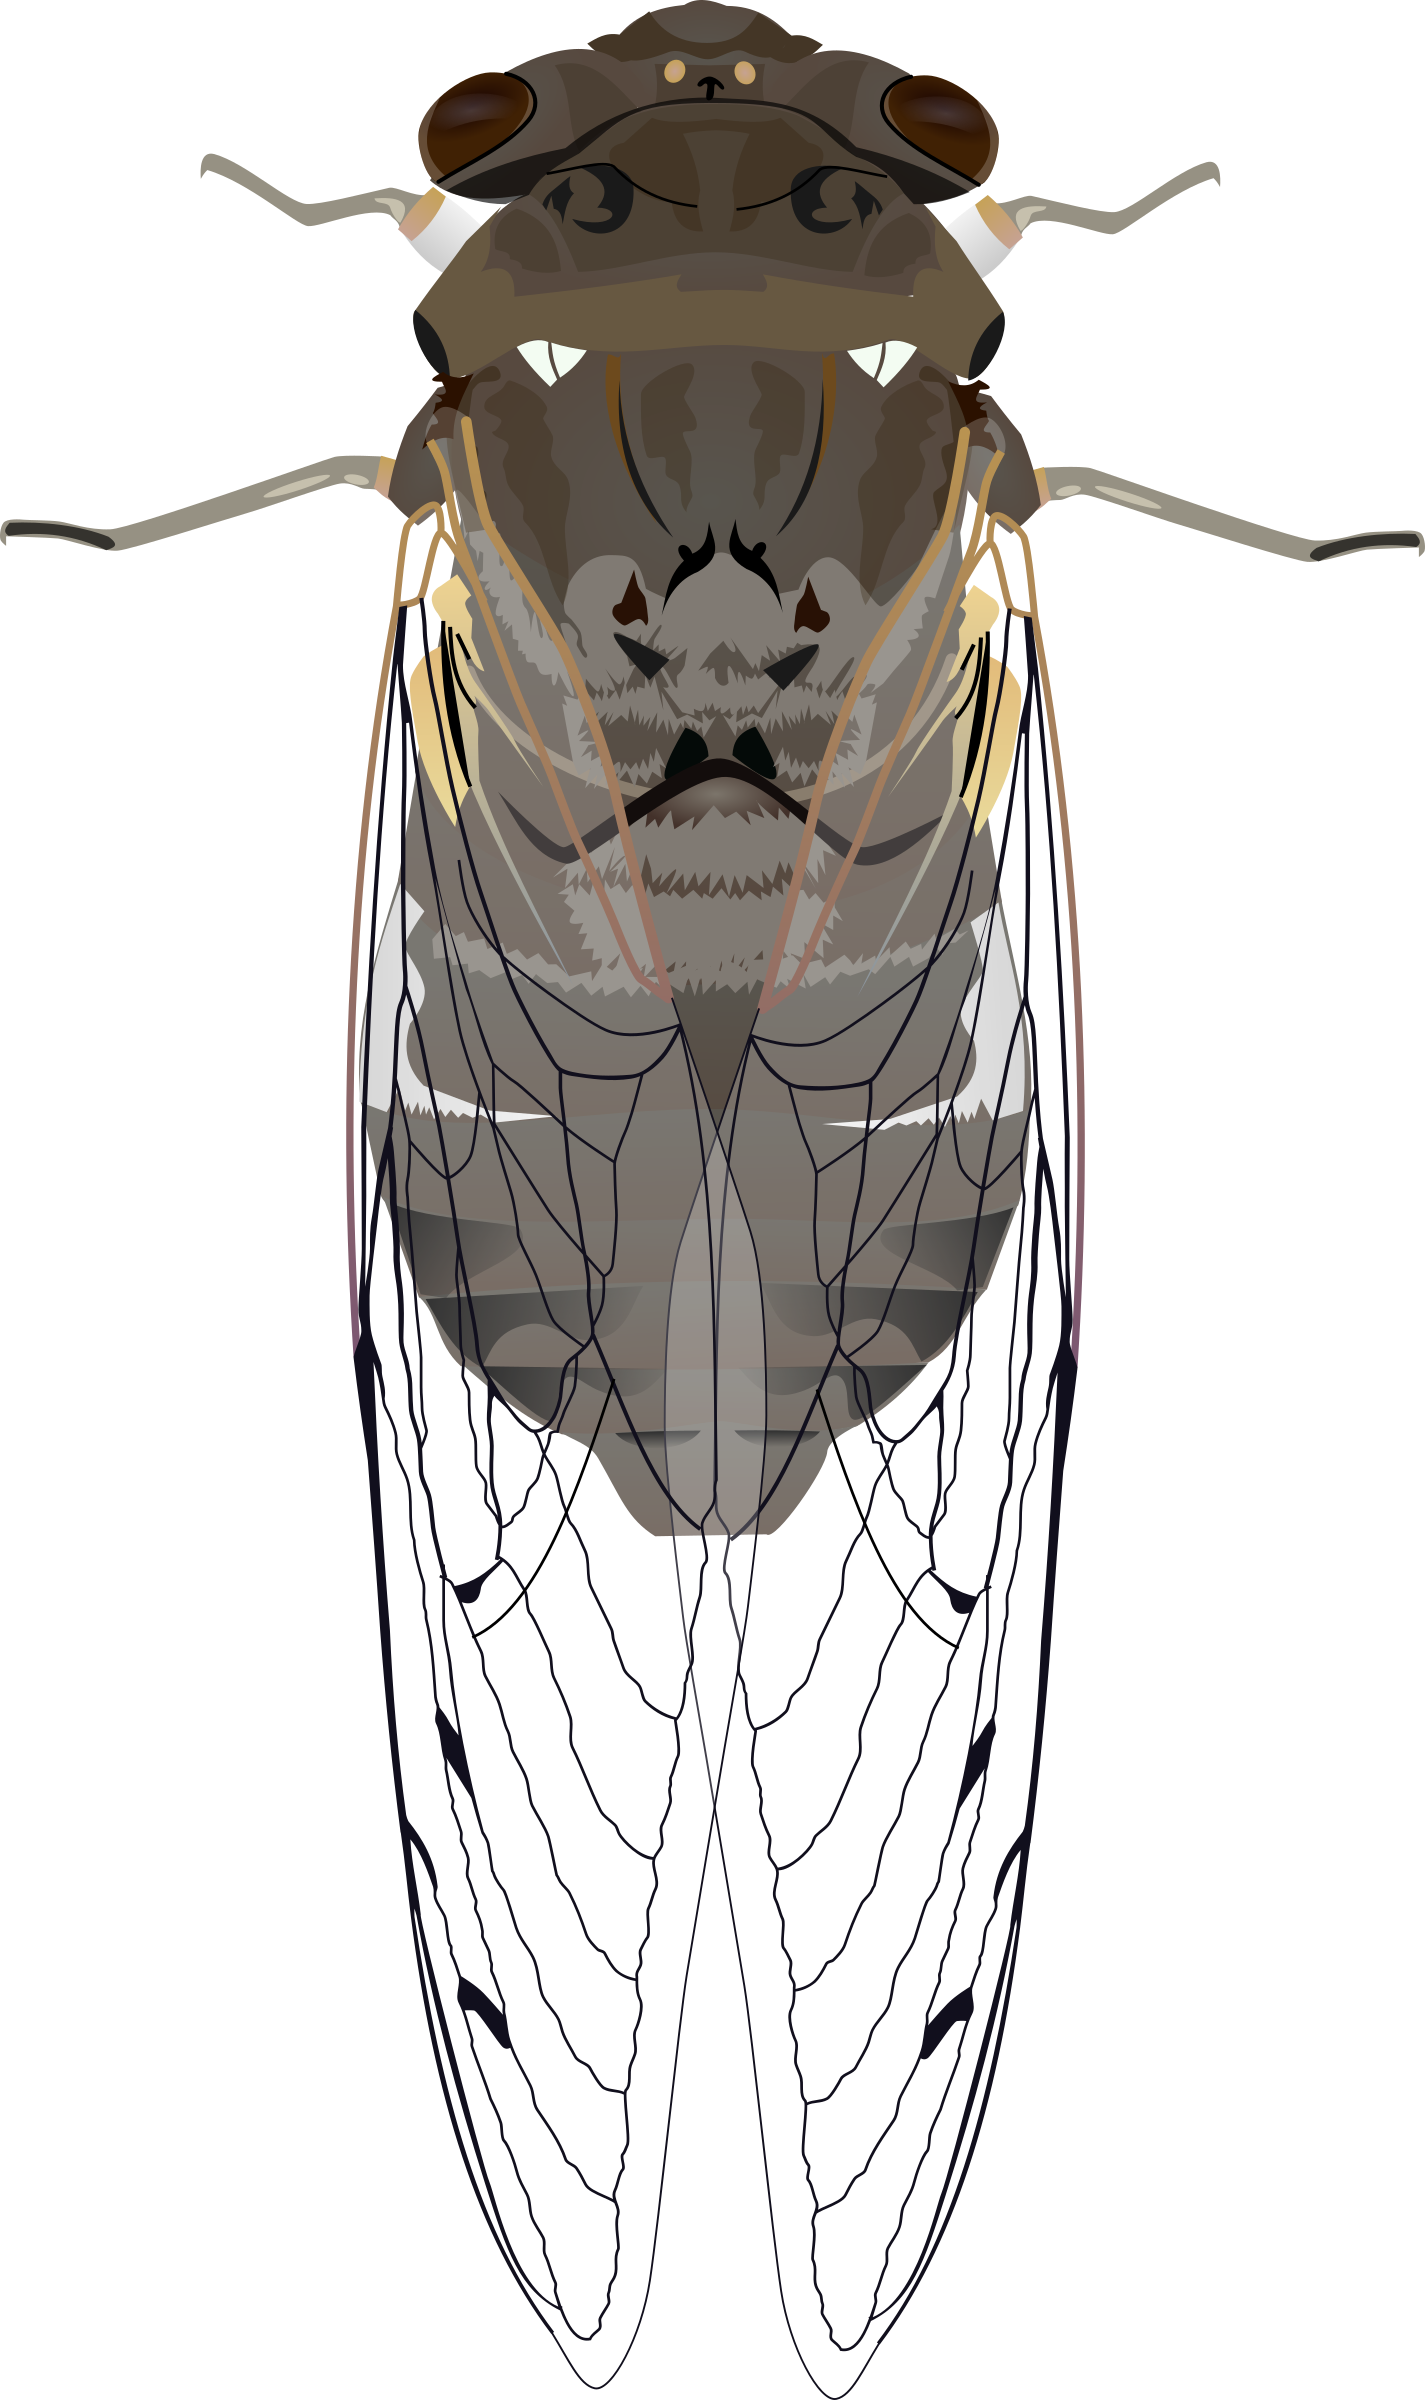 clip royalty free stock Big image png. Bugs clipart cicada.